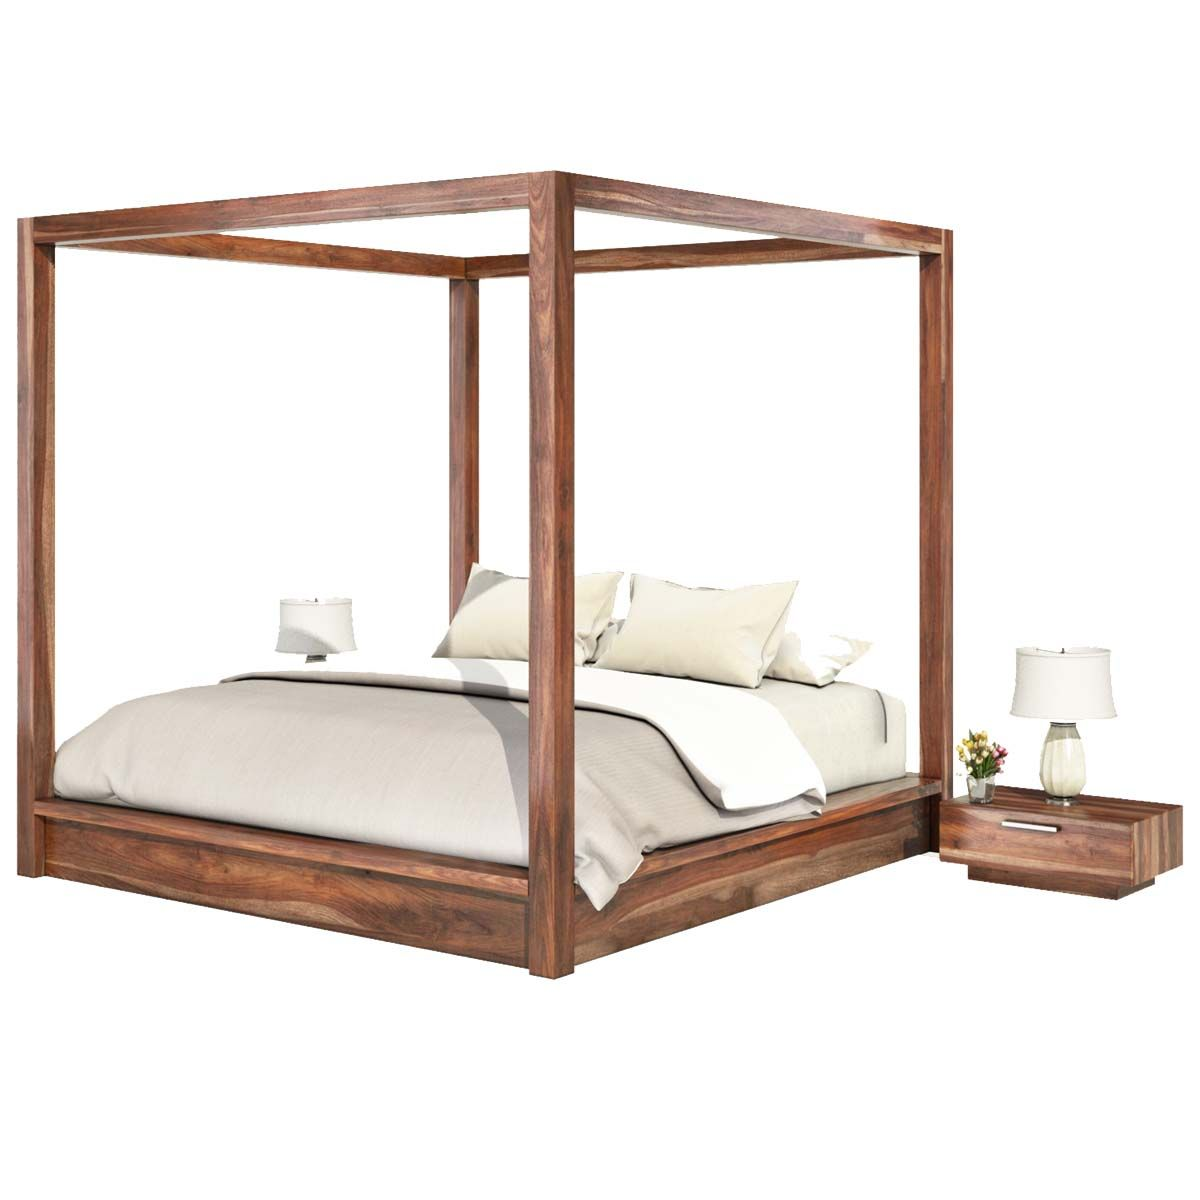 Hampshire Rustic Solid Wood Queen Size Canopy Bed Frame Canopy